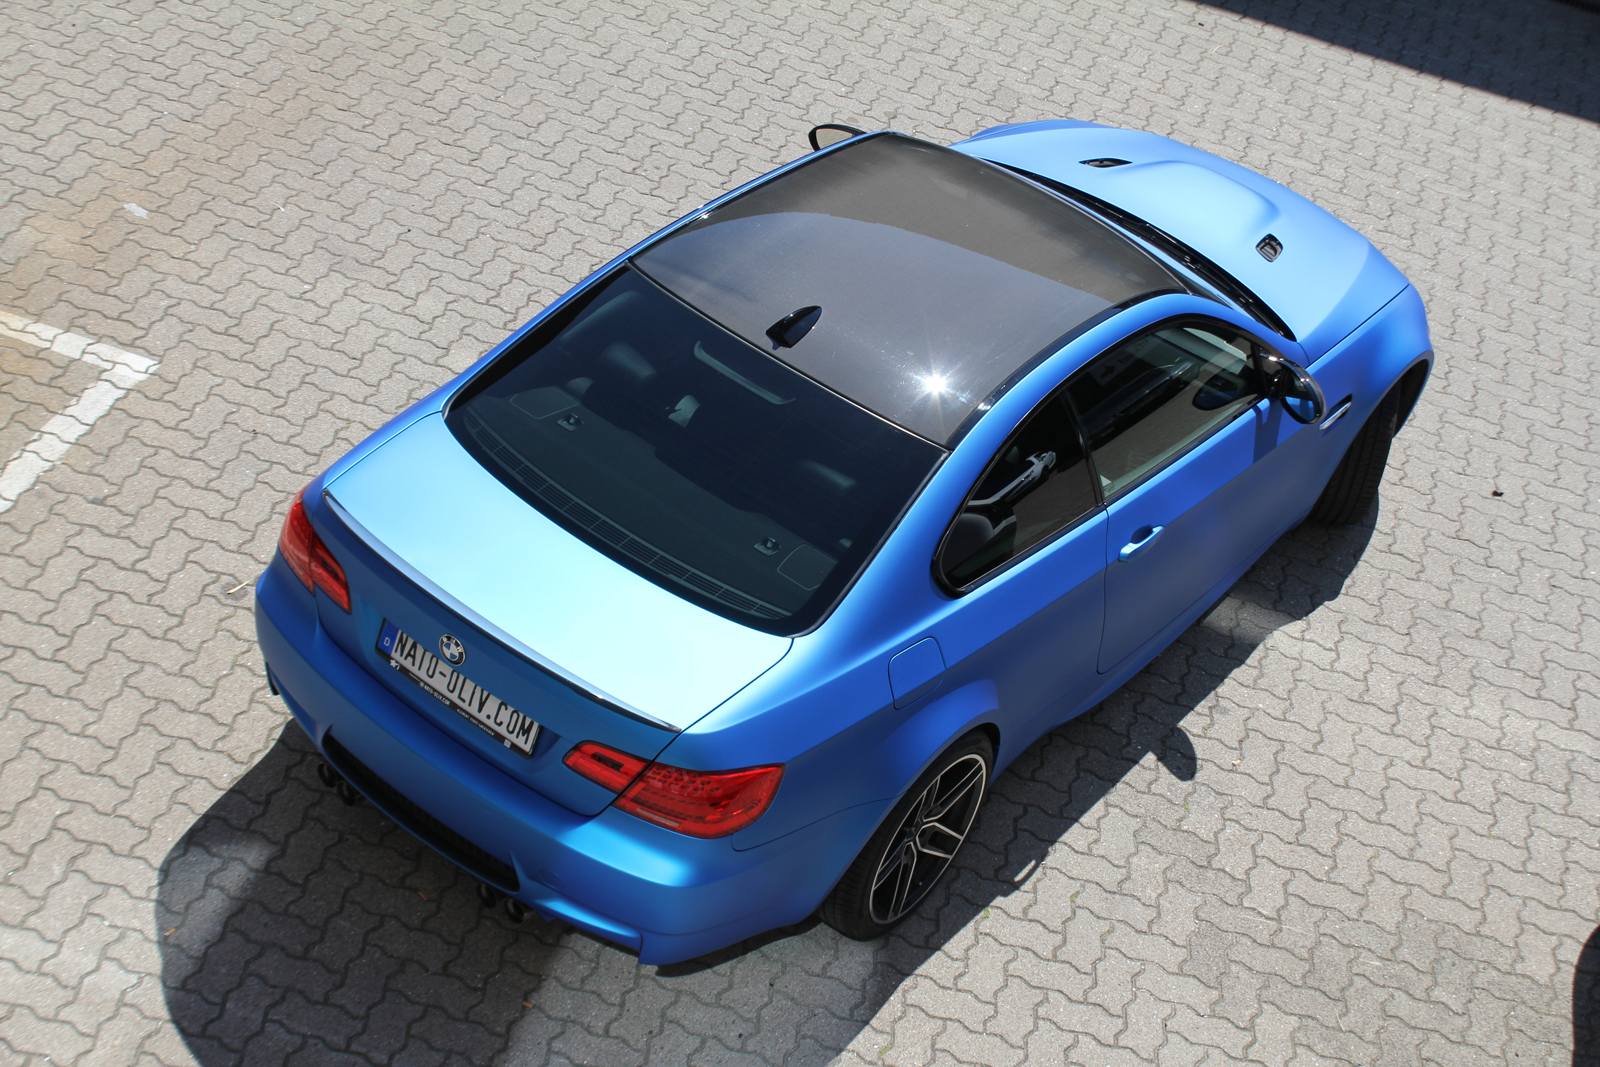 Car Wrapping Auto Folierung BMW M3 Aluminium Blue Metallic Matt